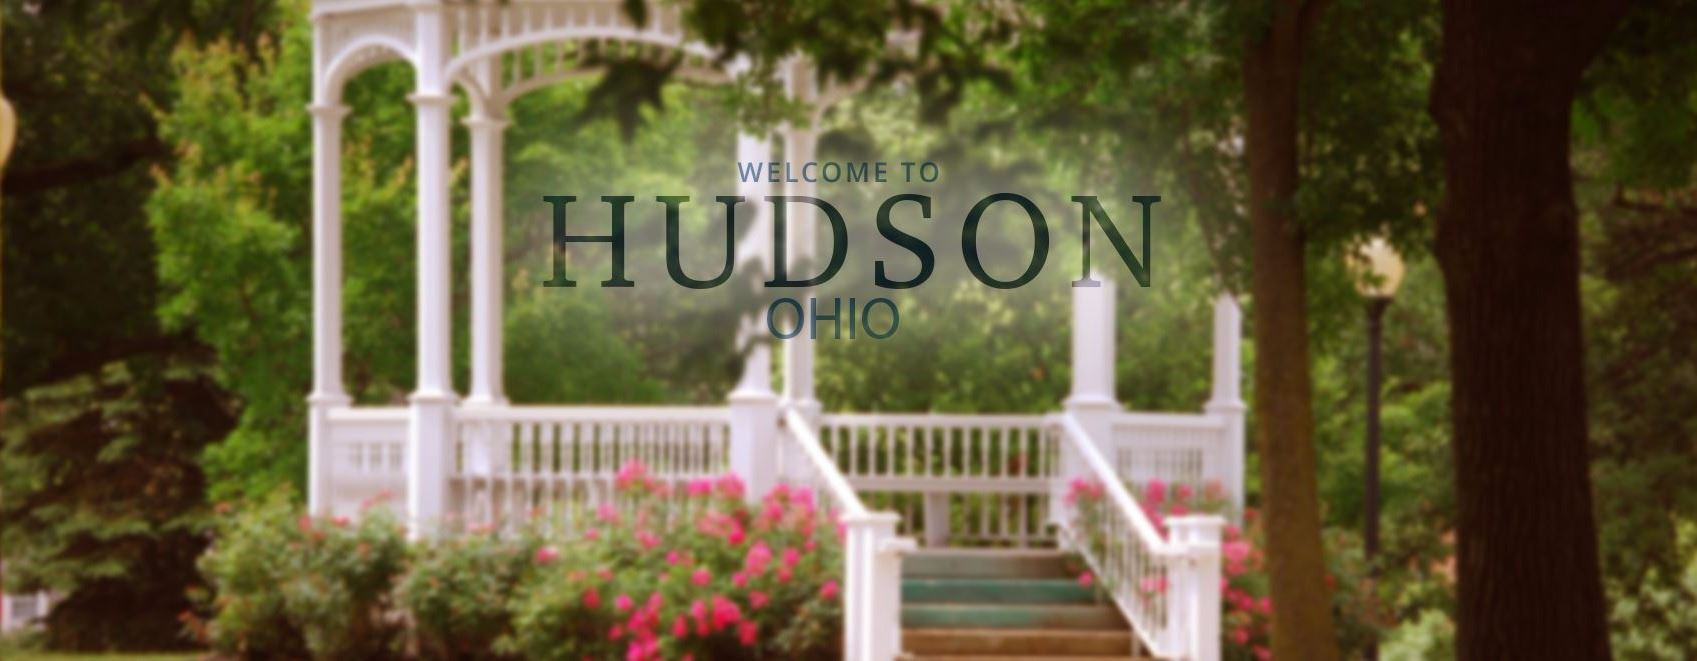 Police | Hudson, OH - Official Website